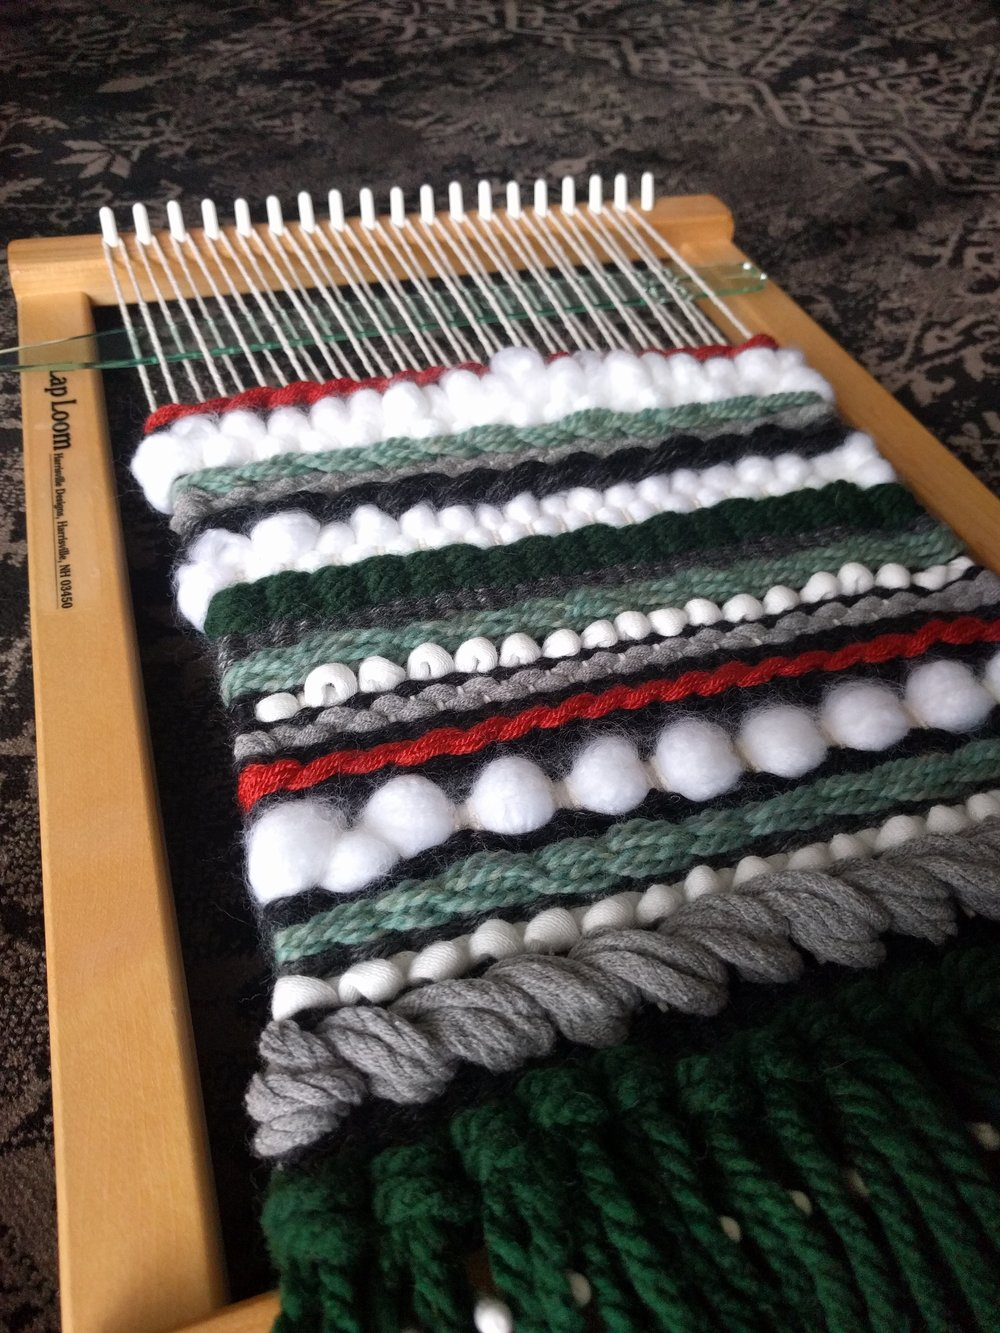 Weaving hobby progress - brianakapper.com